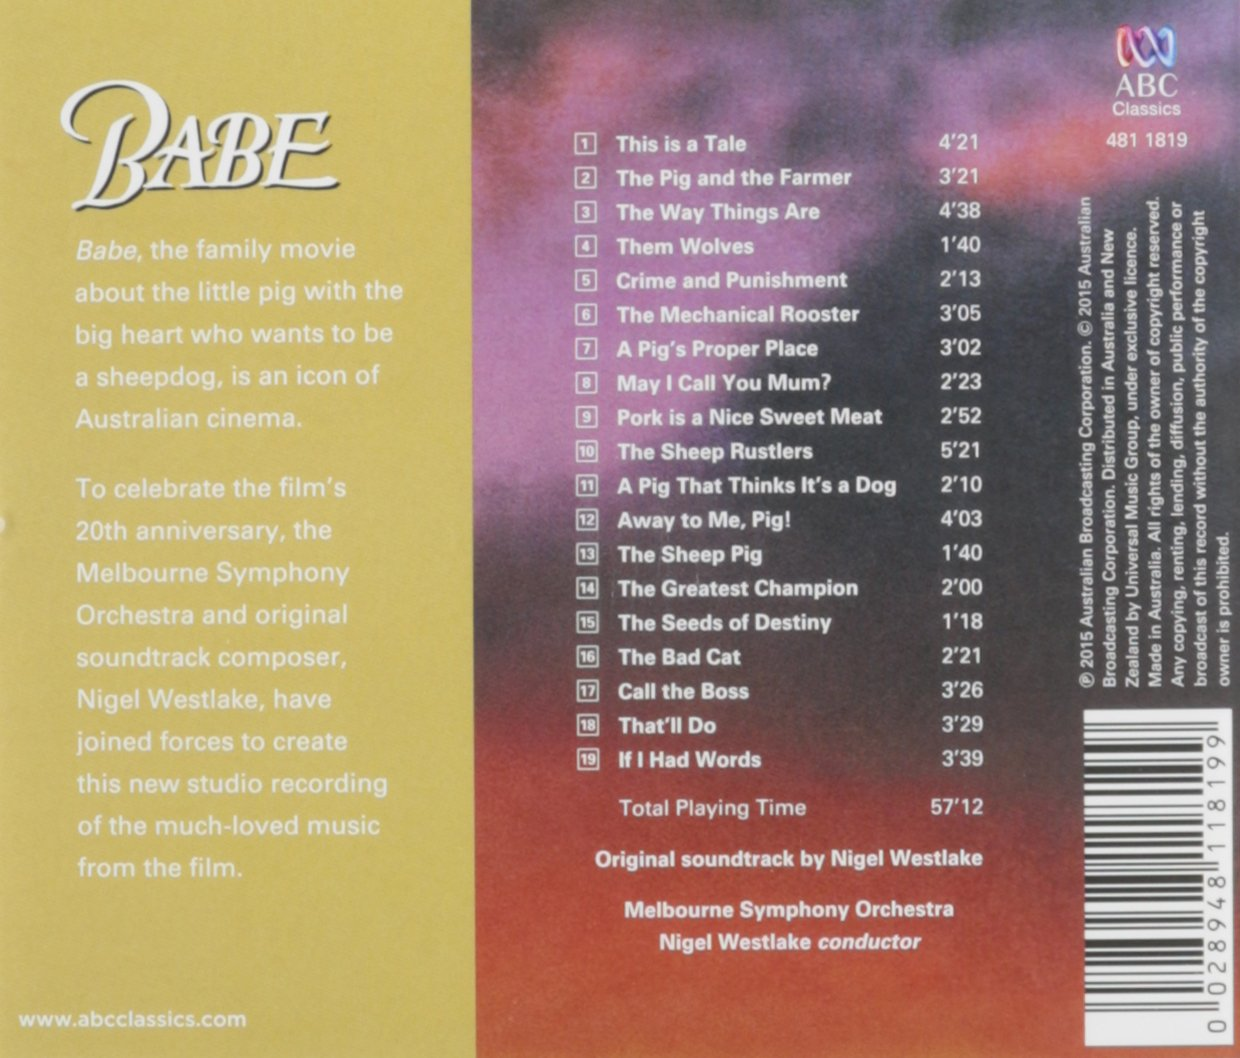 Babe: Orchestral Soundtrack 2015 by ABC Classics